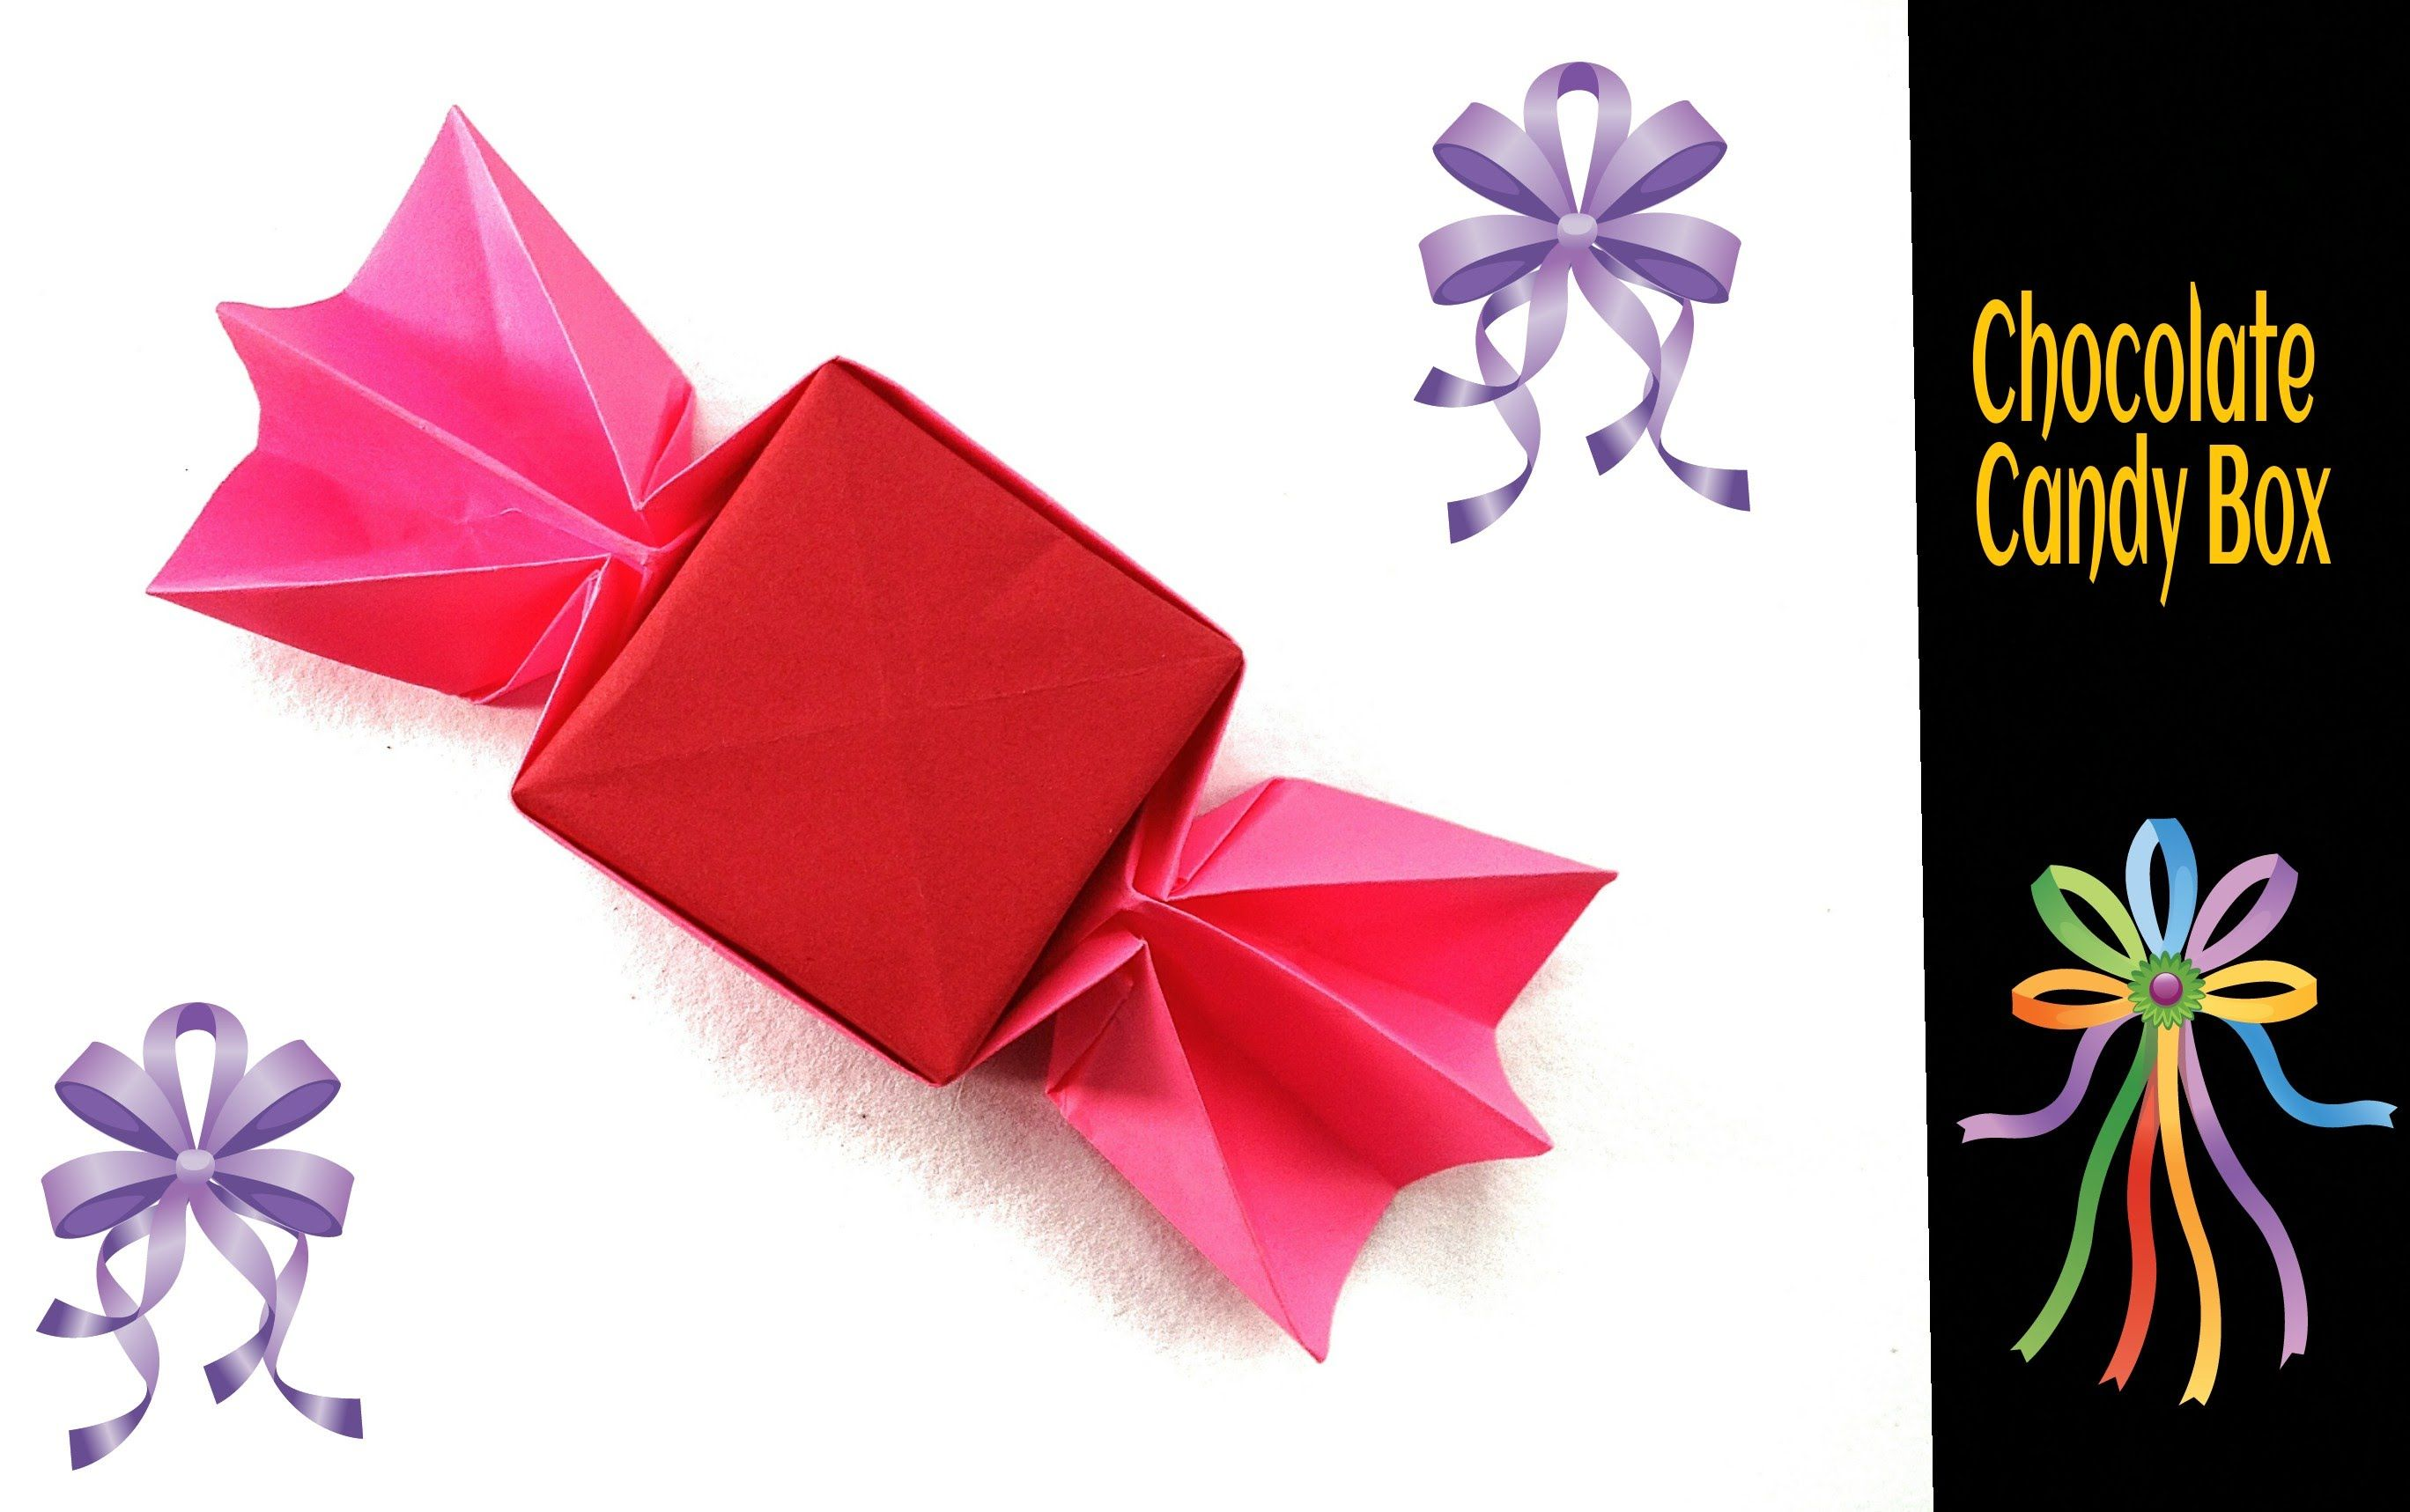 origami paper chocolate candy box paper folds